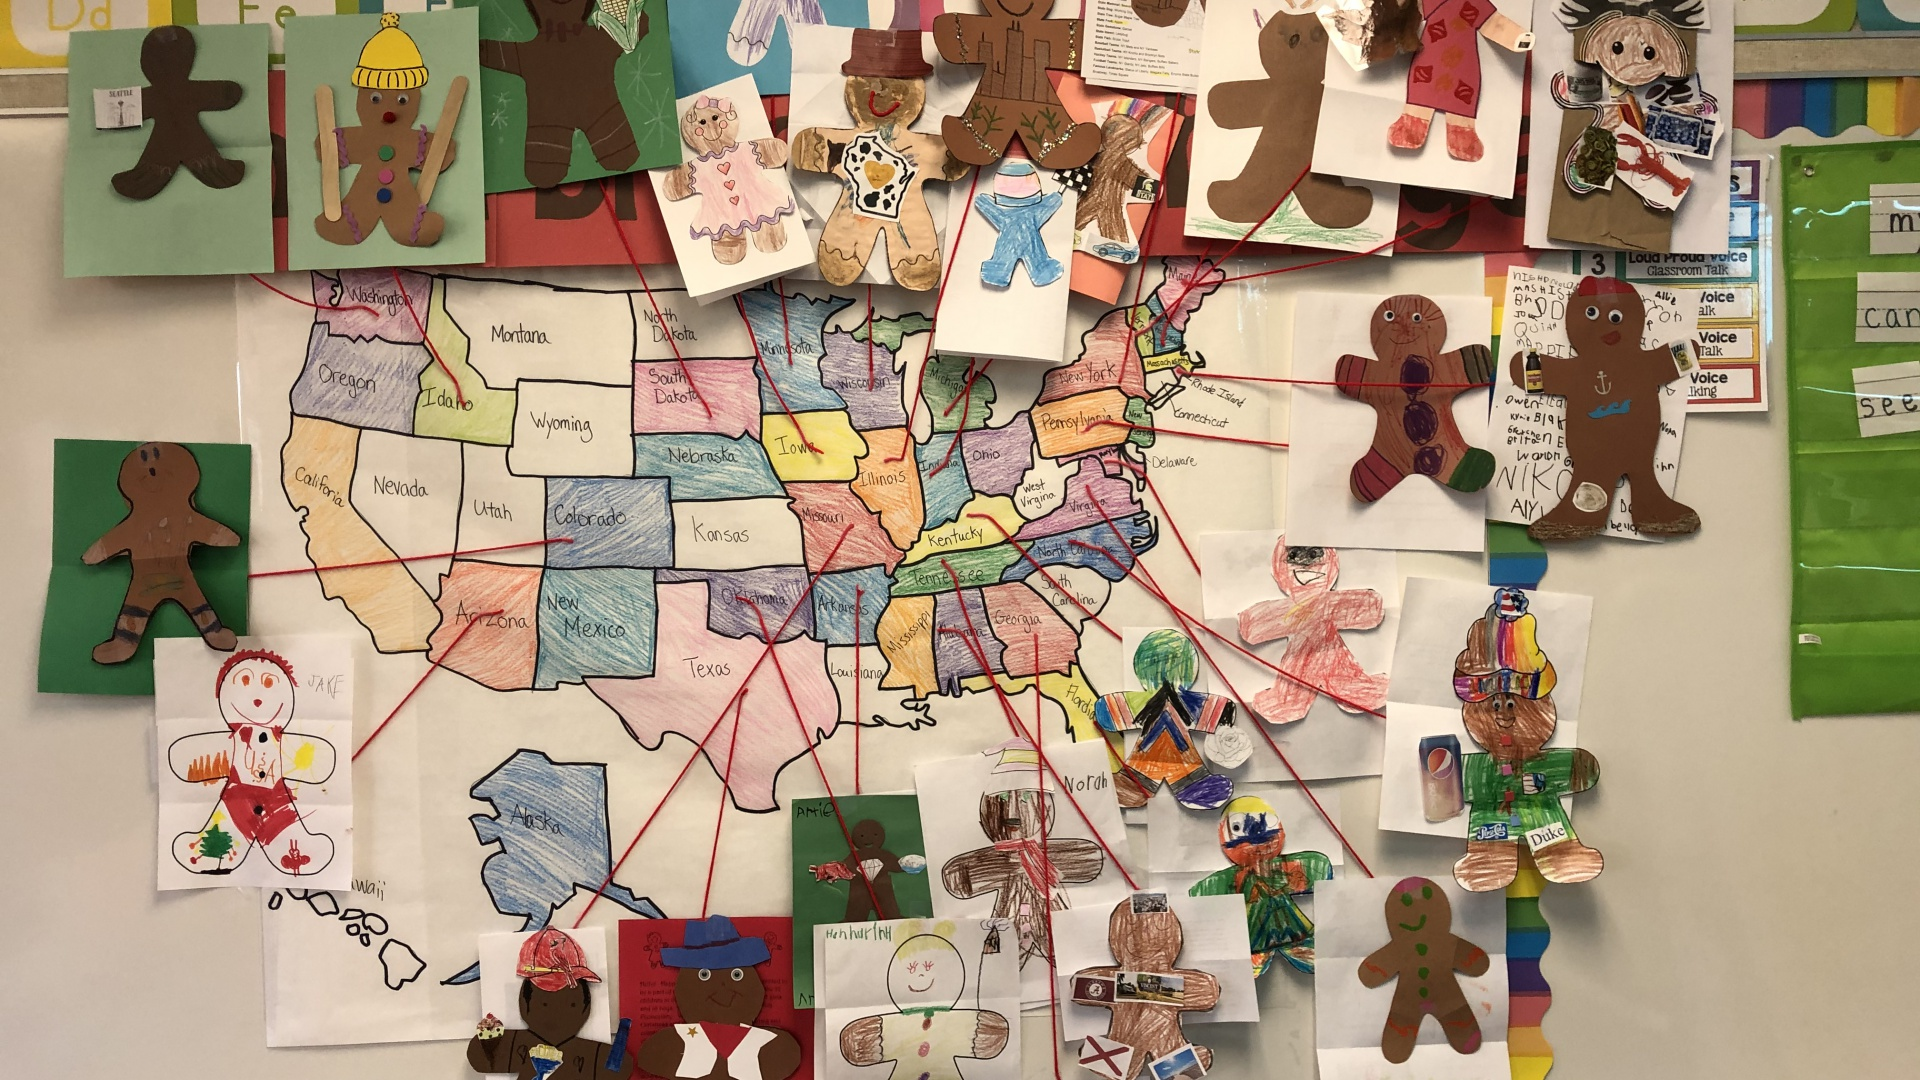 Miss Milano's kindergarten students participated in learning about other states through sharing gingerbread figures with facts on them